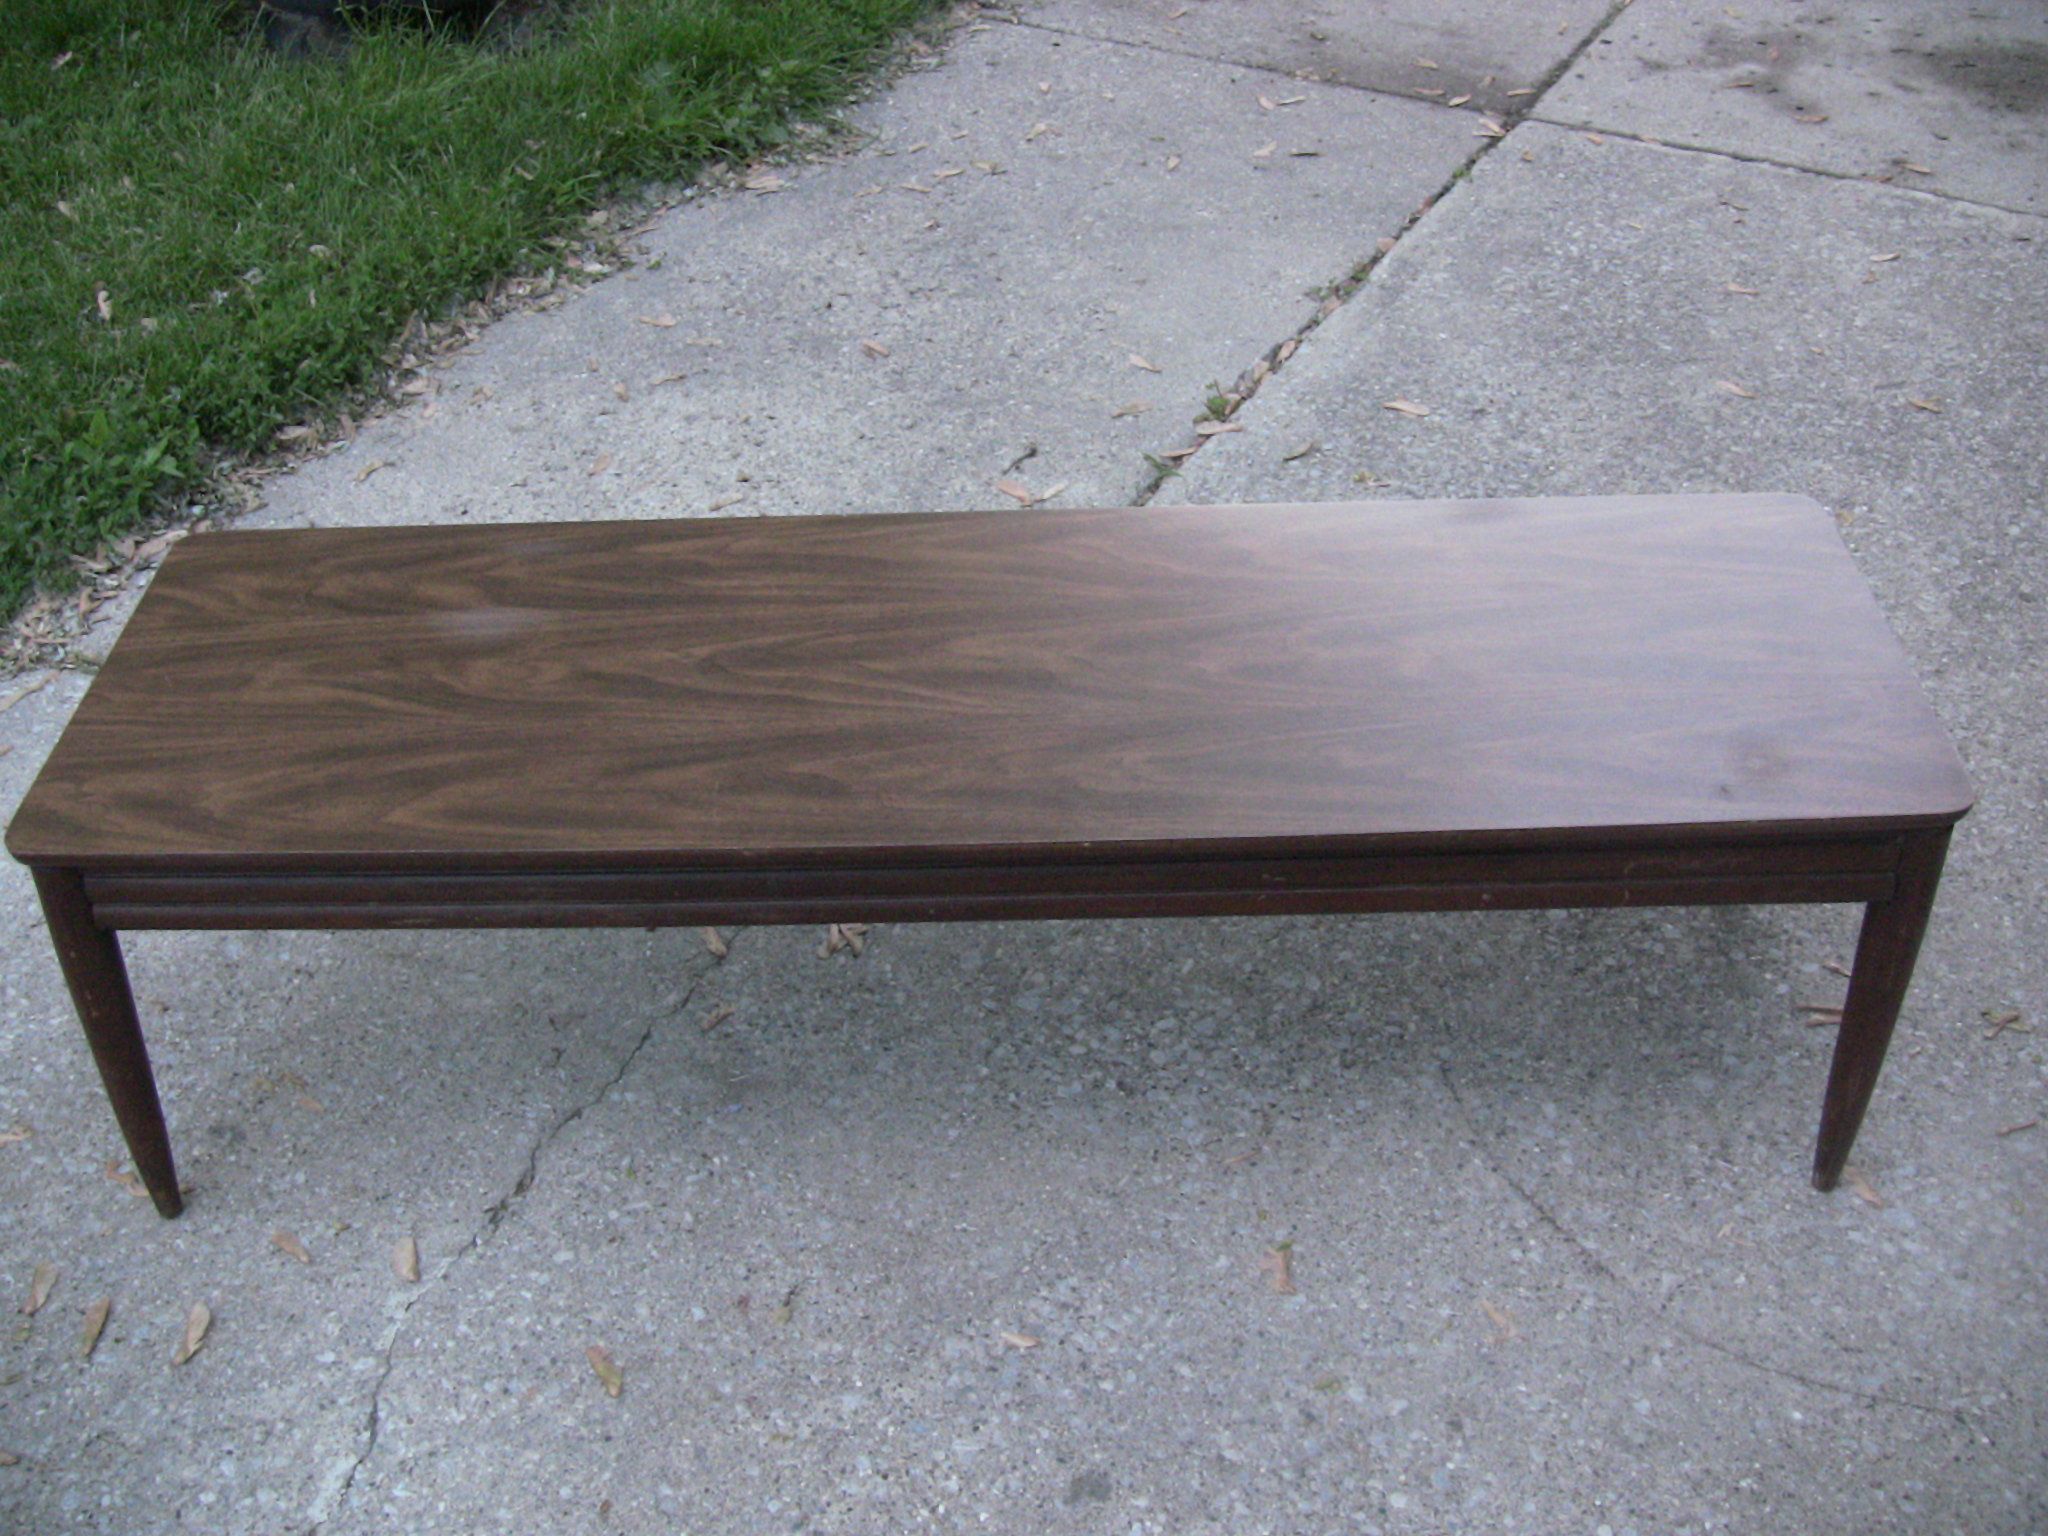 Vintage Mid Century Long Low Coffee Table Walnut Wood Formica Etsy Walnut Wood Coffee Tables Low Coffee Table Walnut Coffee Table [ 1536 x 2048 Pixel ]